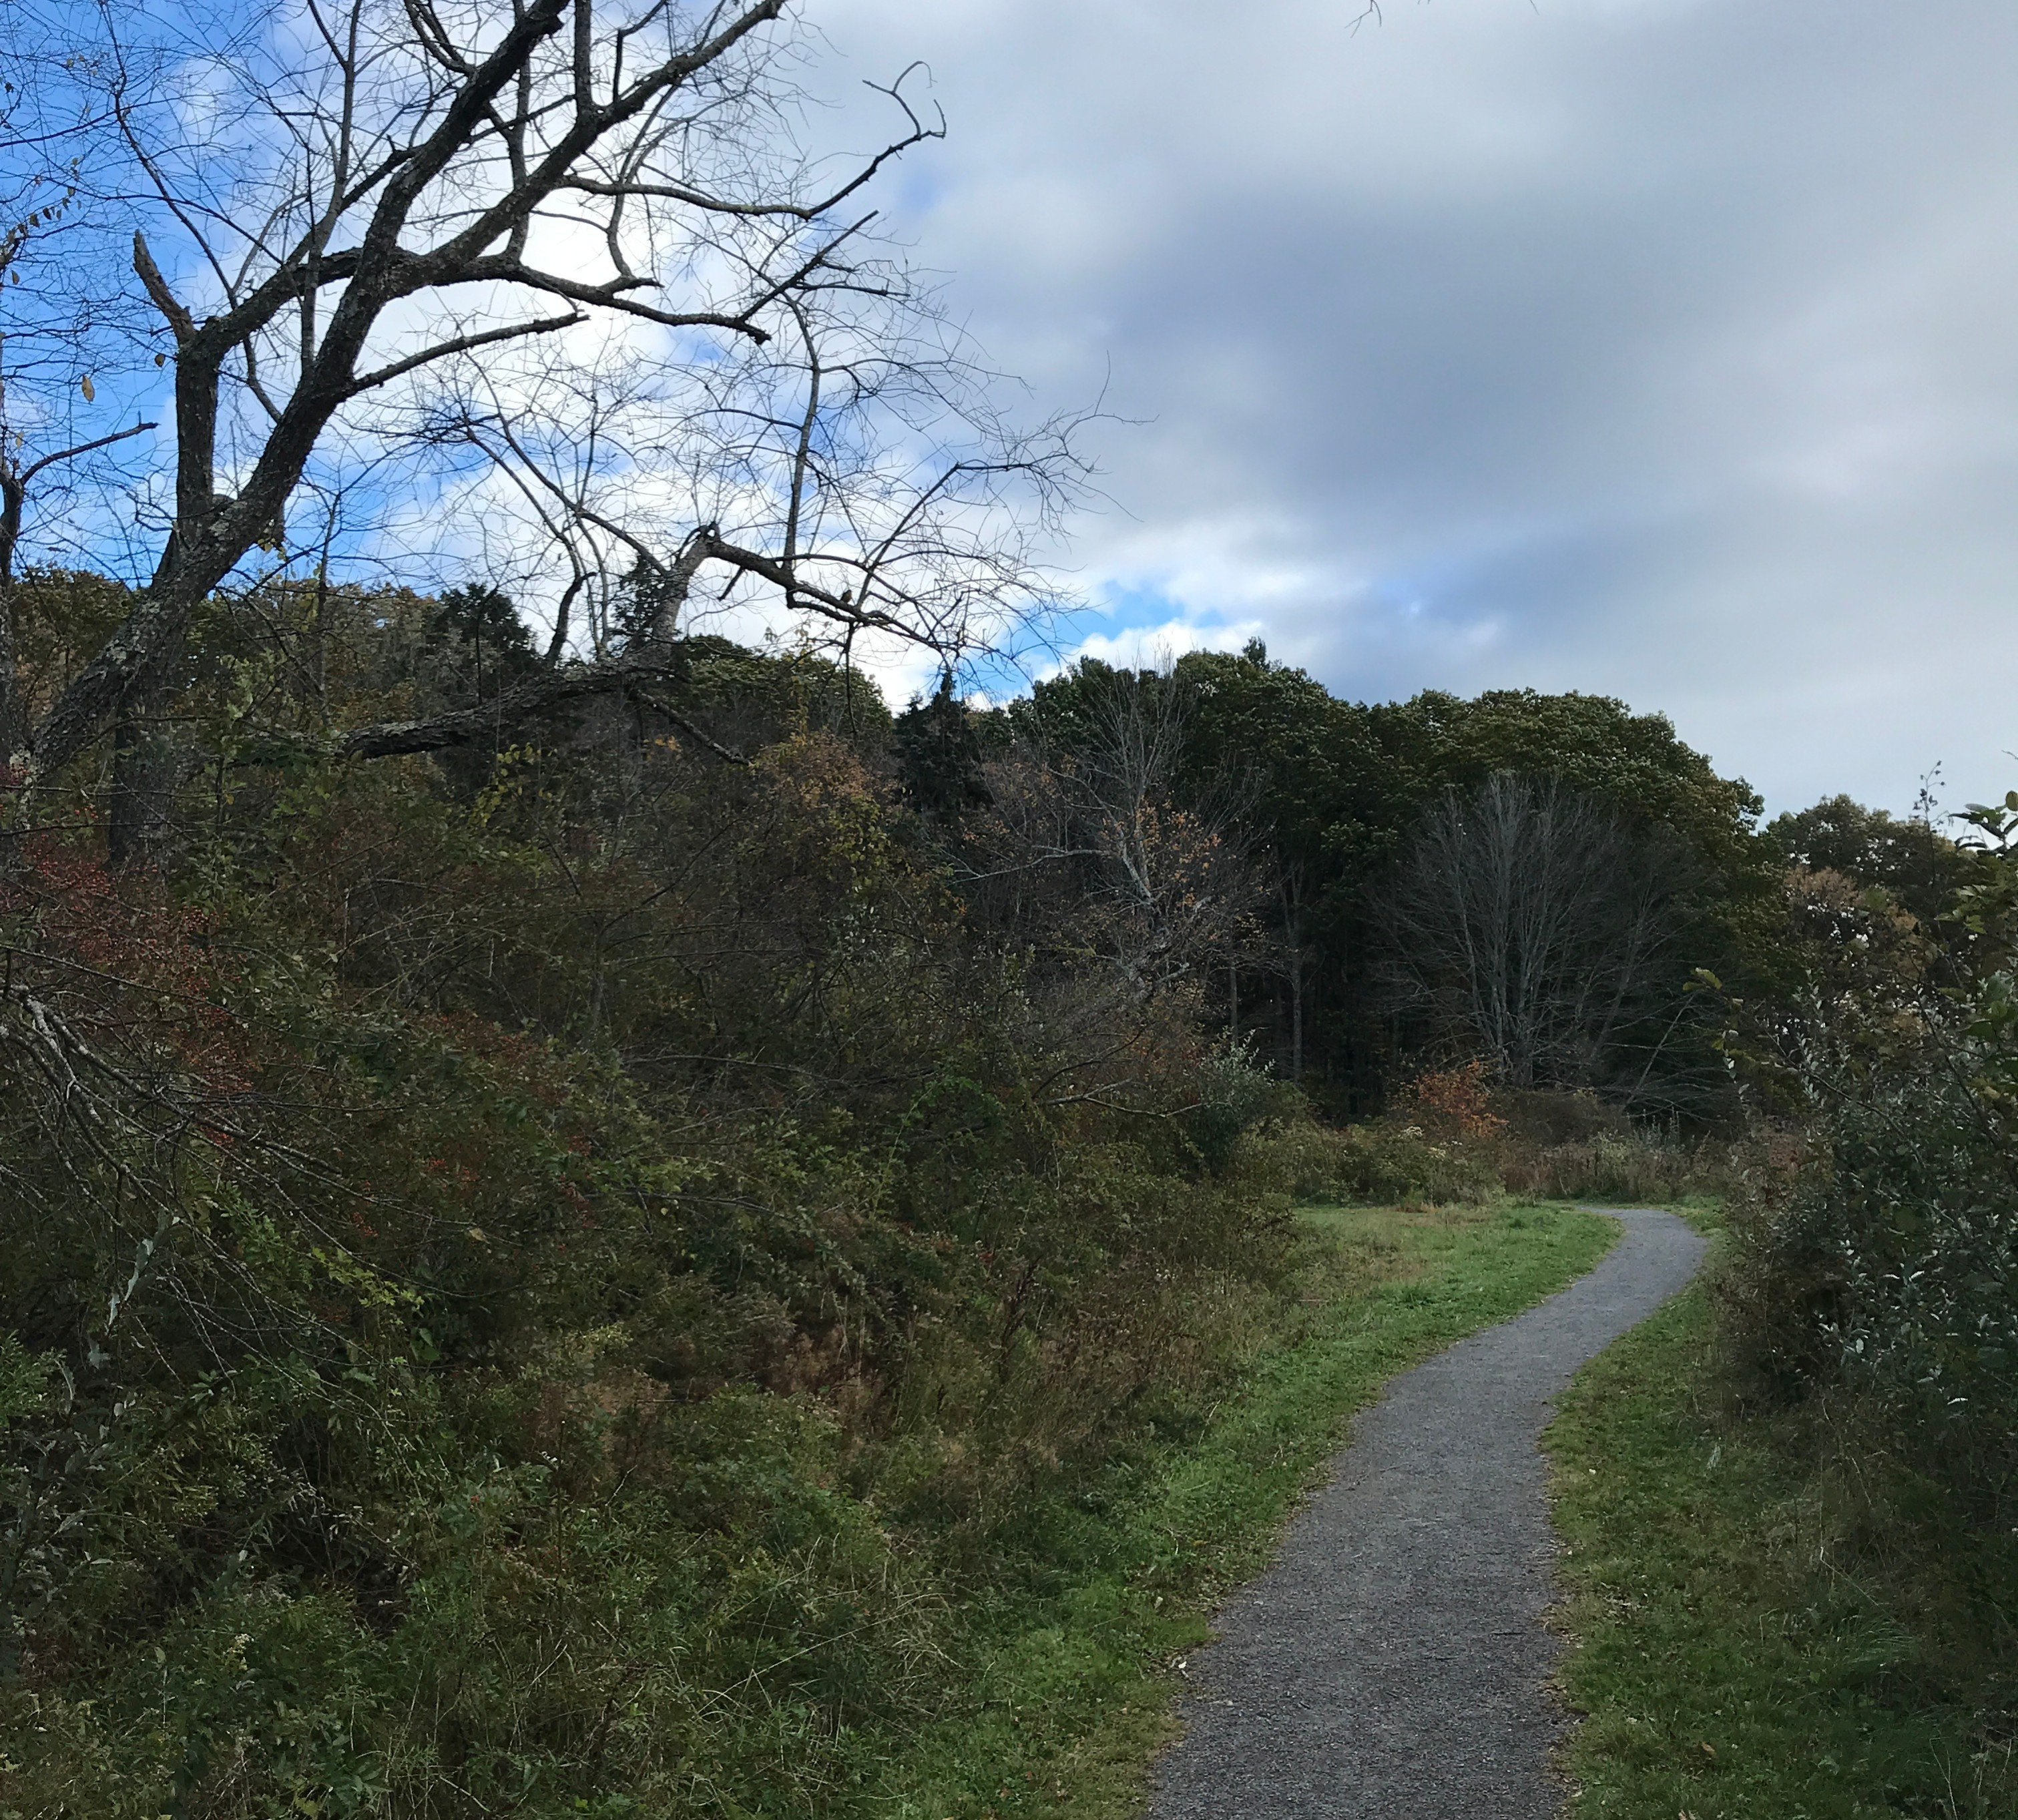 The Pleasant Hill Preserve trail - one of the easiest hiking trails around Portland, Maine.